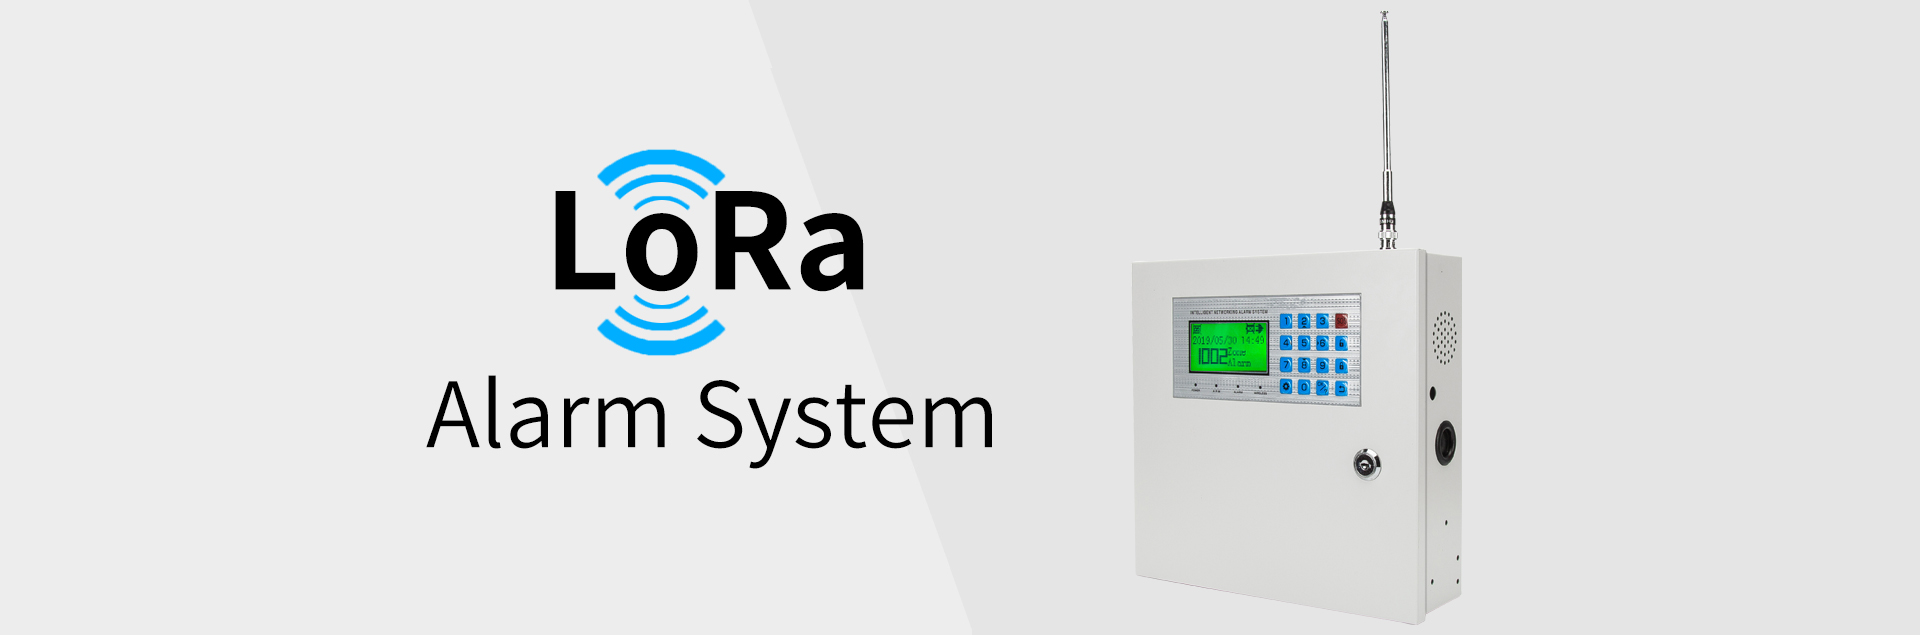 LoRa Wireless Alarm System